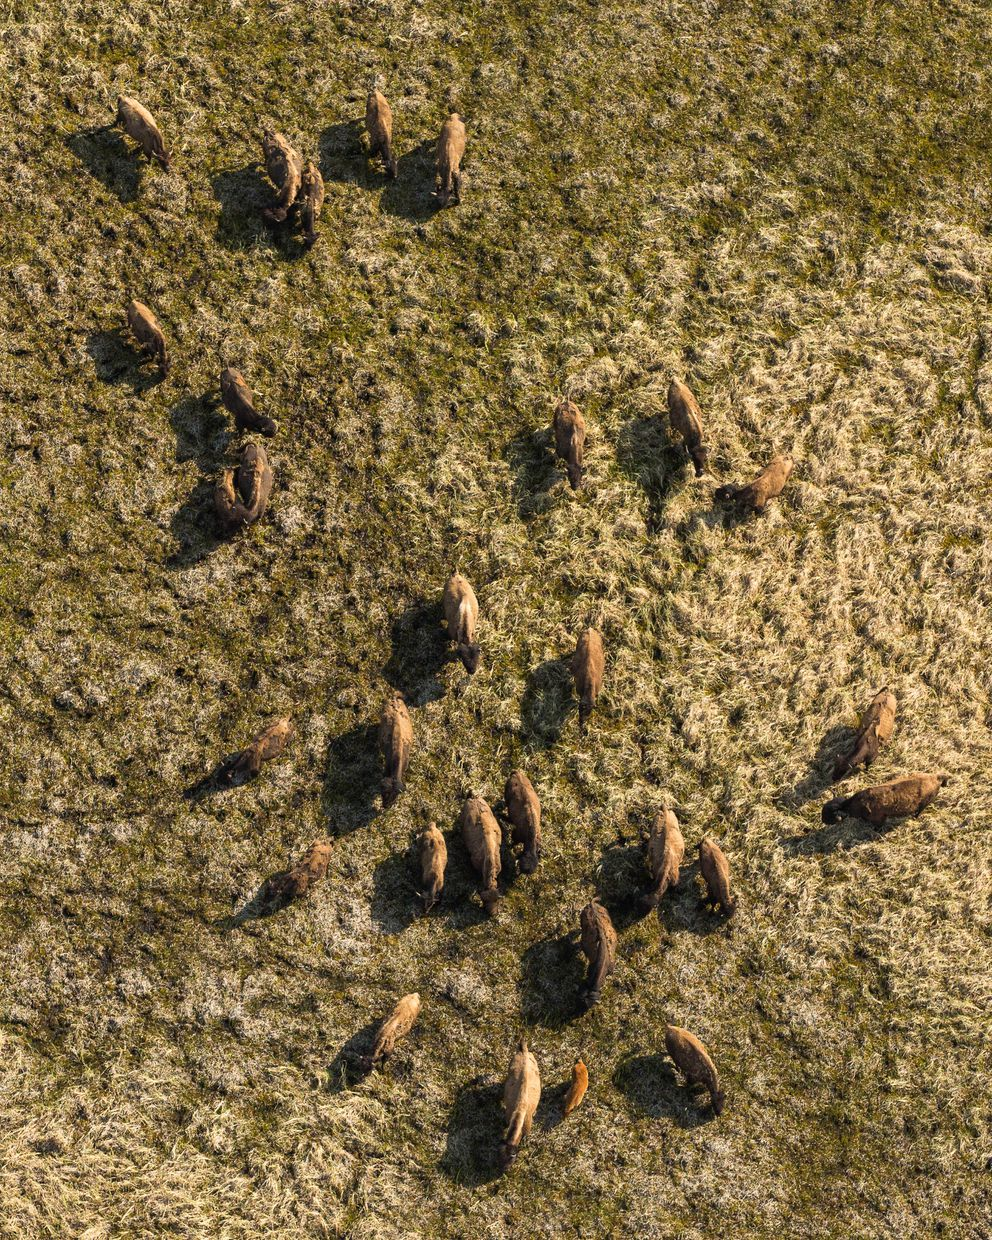 A group of wood bison in a sedge meadow in the Innoko River area on May 26 (Loren Holmes / Alaska Dispatch News)